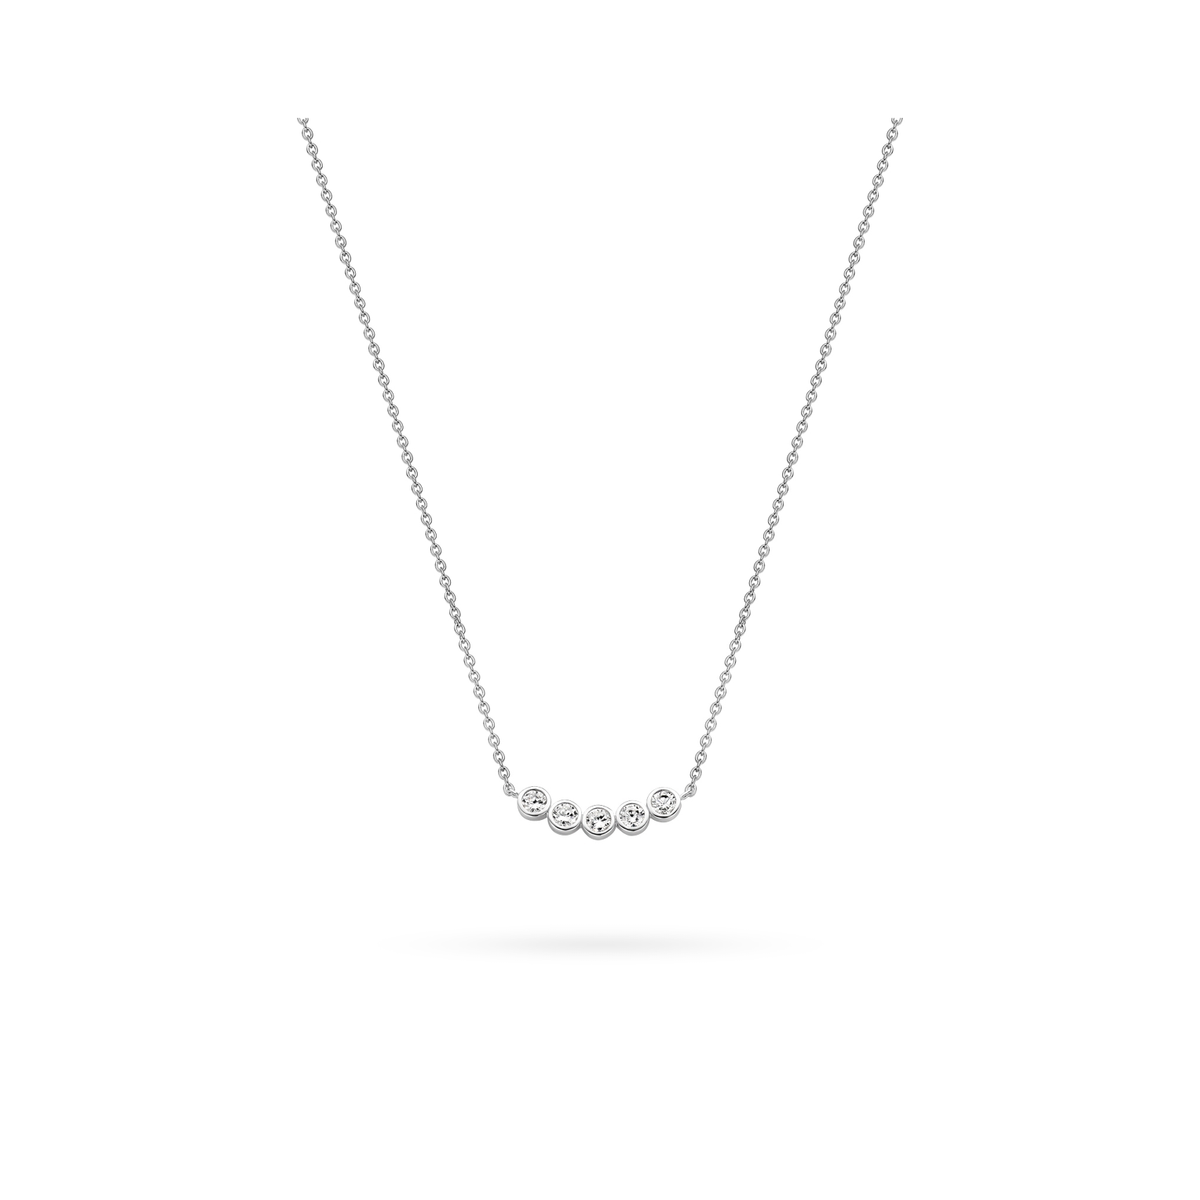 TI SENTO - Milano Necklace 3782ZI